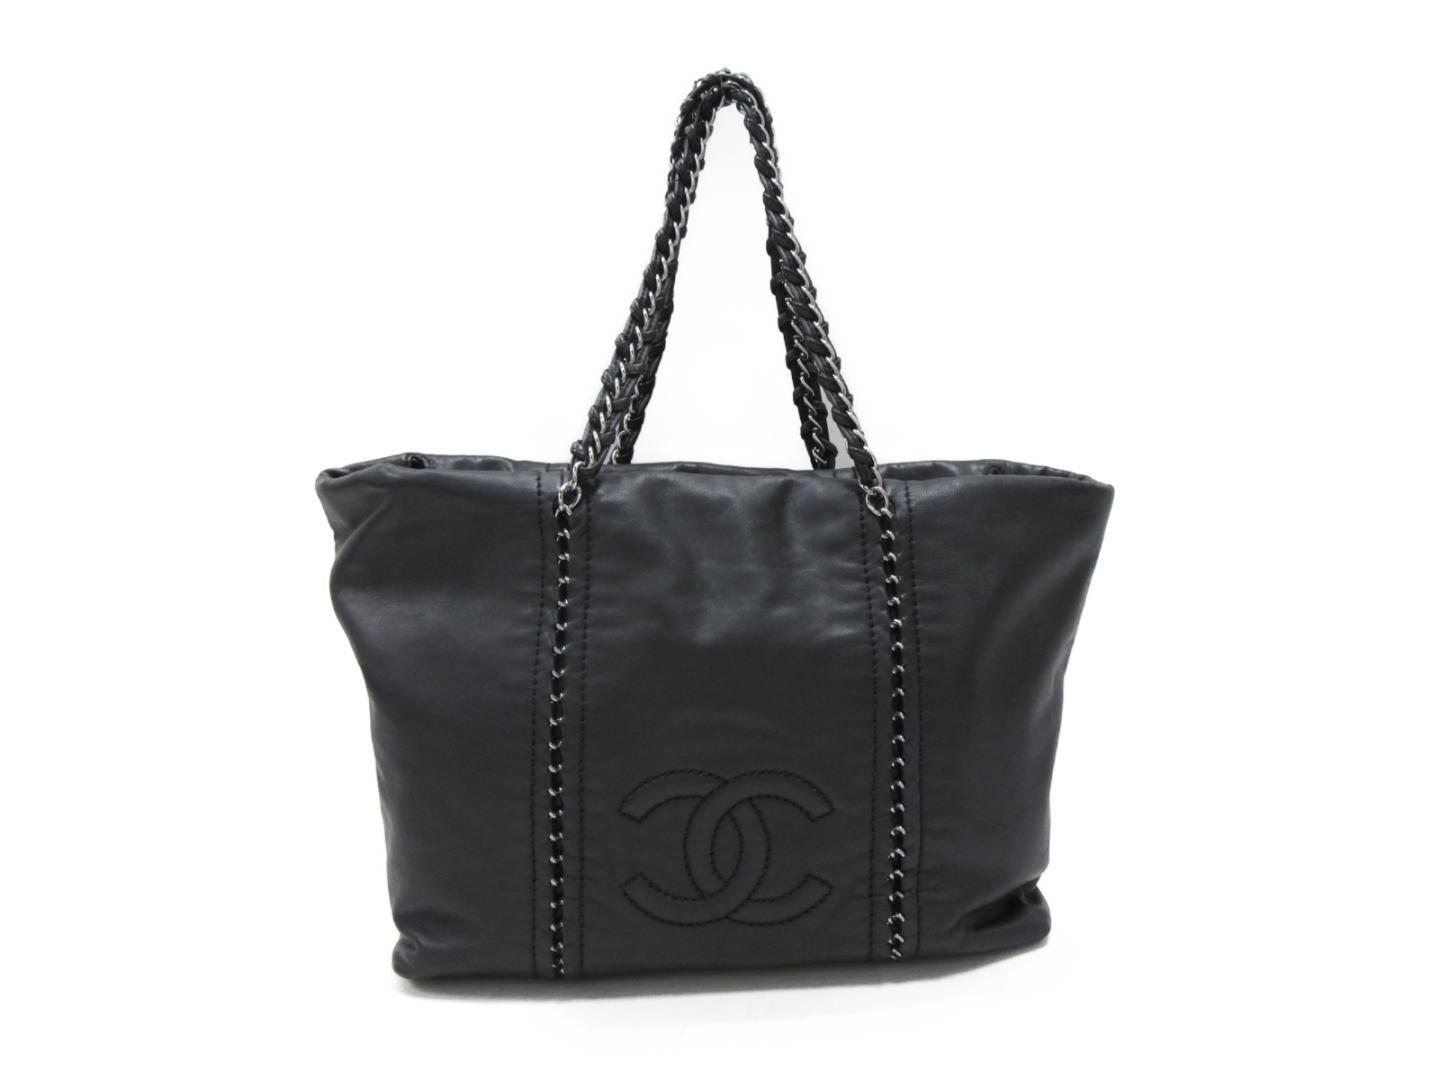 93c0af3c54cb Lyst - Chanel Chain Shoulder Tote Bag Leather Black Used Vintage in ...